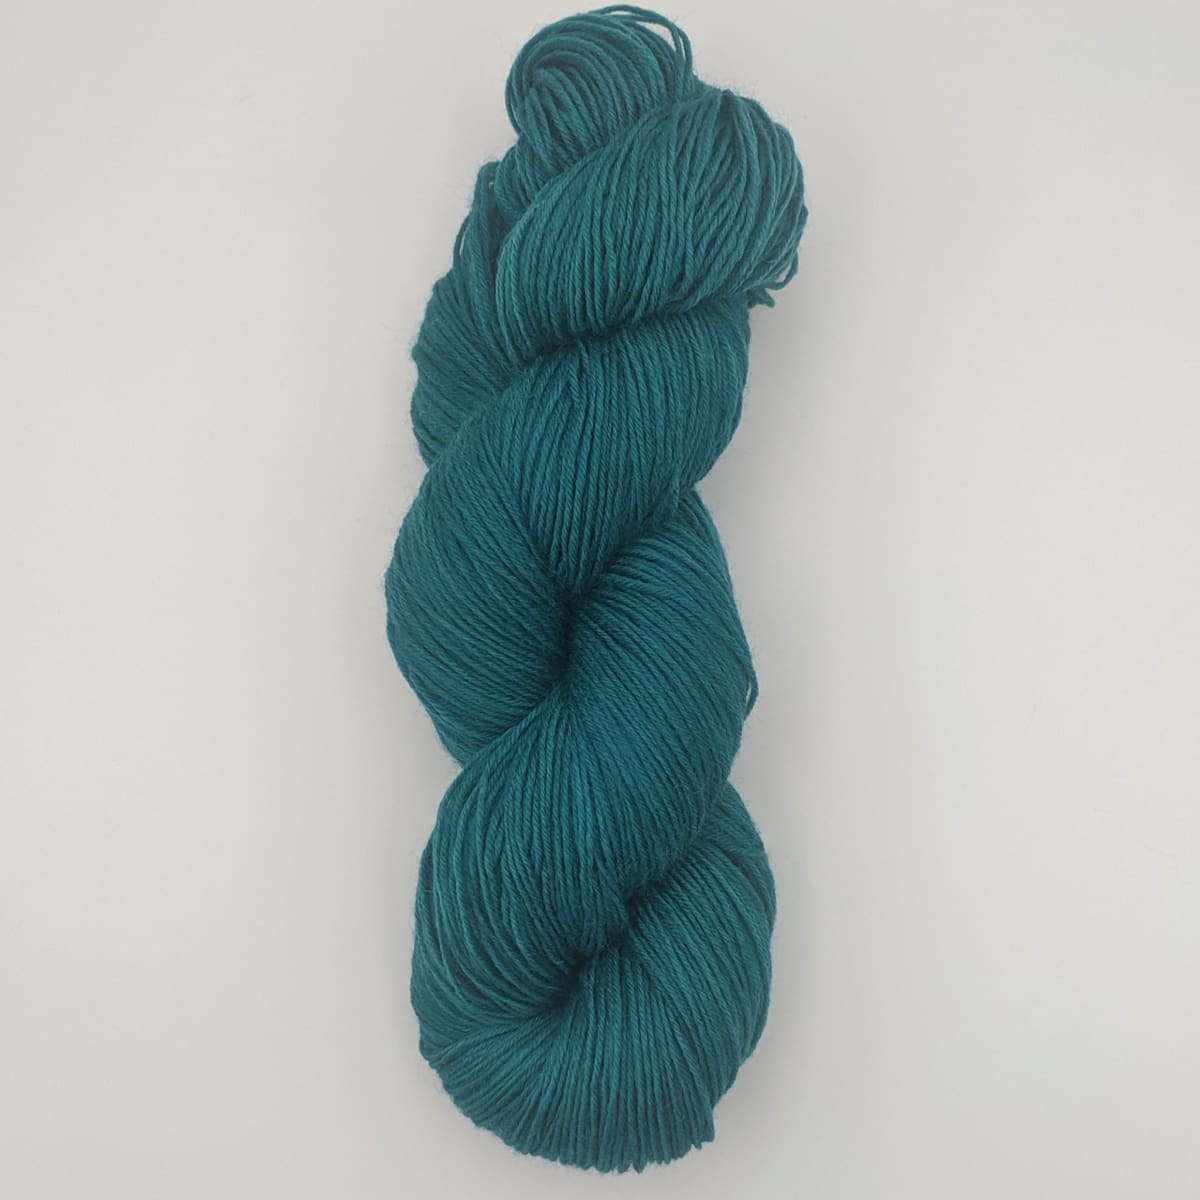 Merino-Nylon Sock Yarn - Dark Teal - YARN